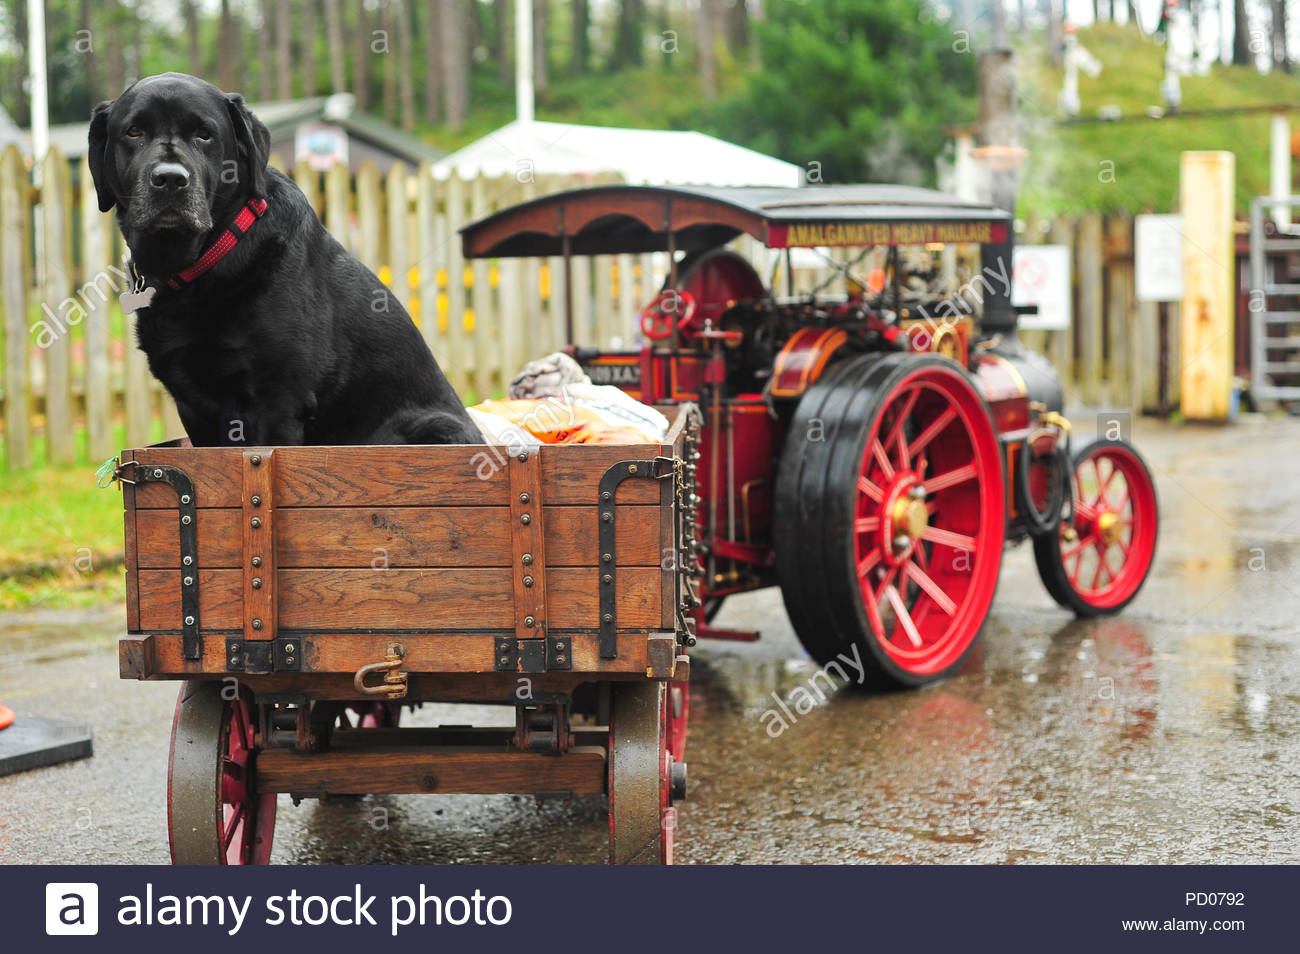 Black Labrador sat in a trailer towed by a steam engine. Man's best friend. Dog - Stock Image